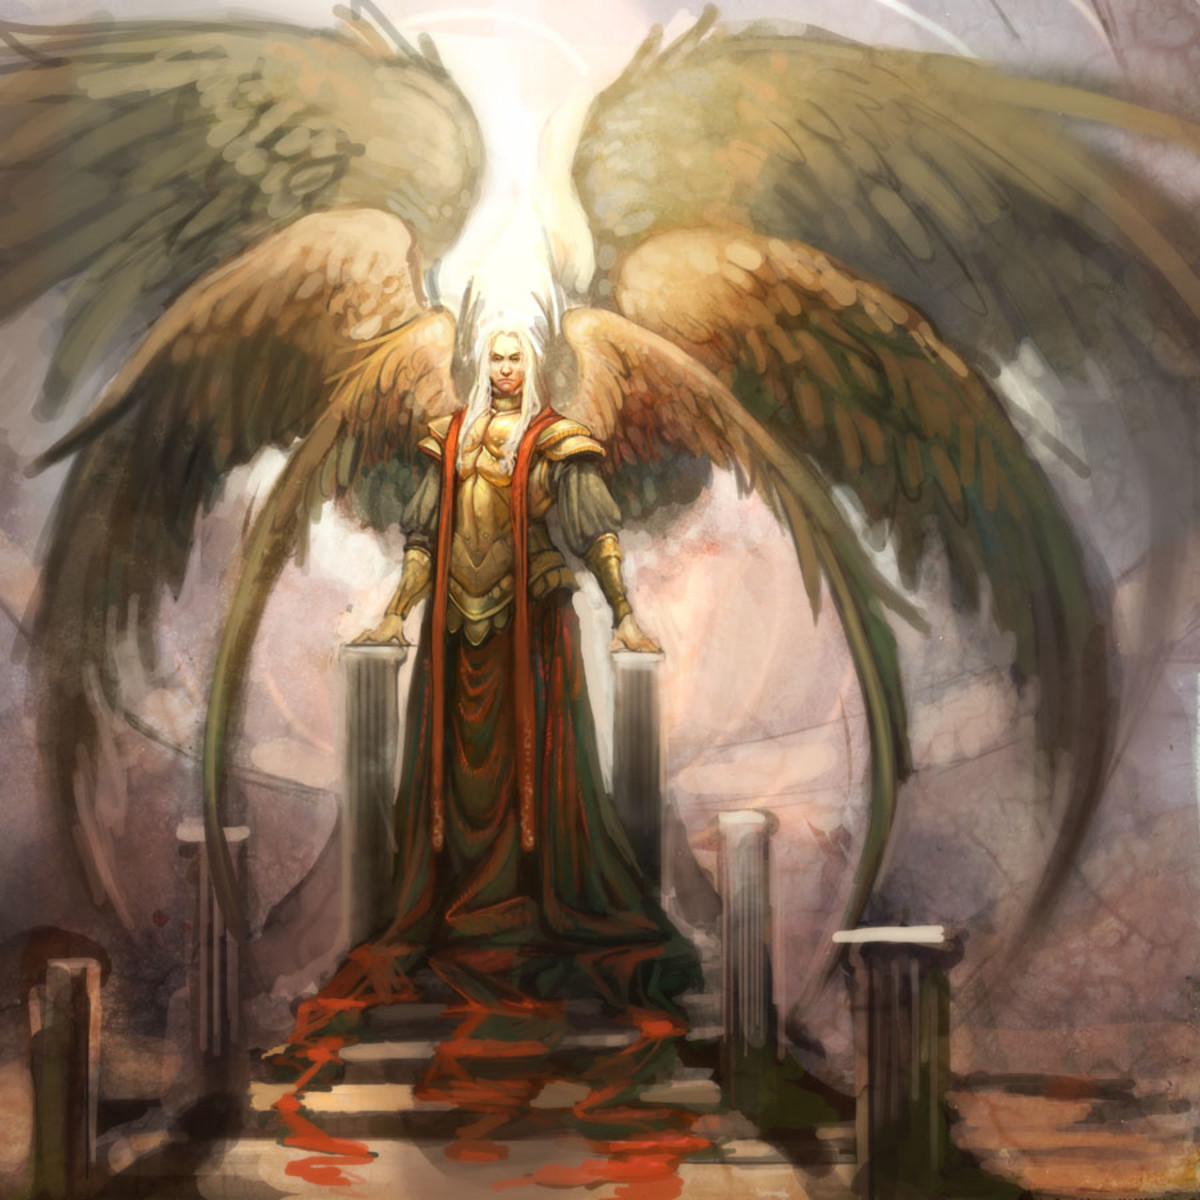 Lucifer is the supreme commander of all the negative angels.  In a way he is like God, but he cannot give life to anything.  So, he serves God in another way, by guiding this part of the universe to look after the negative souls until they die.